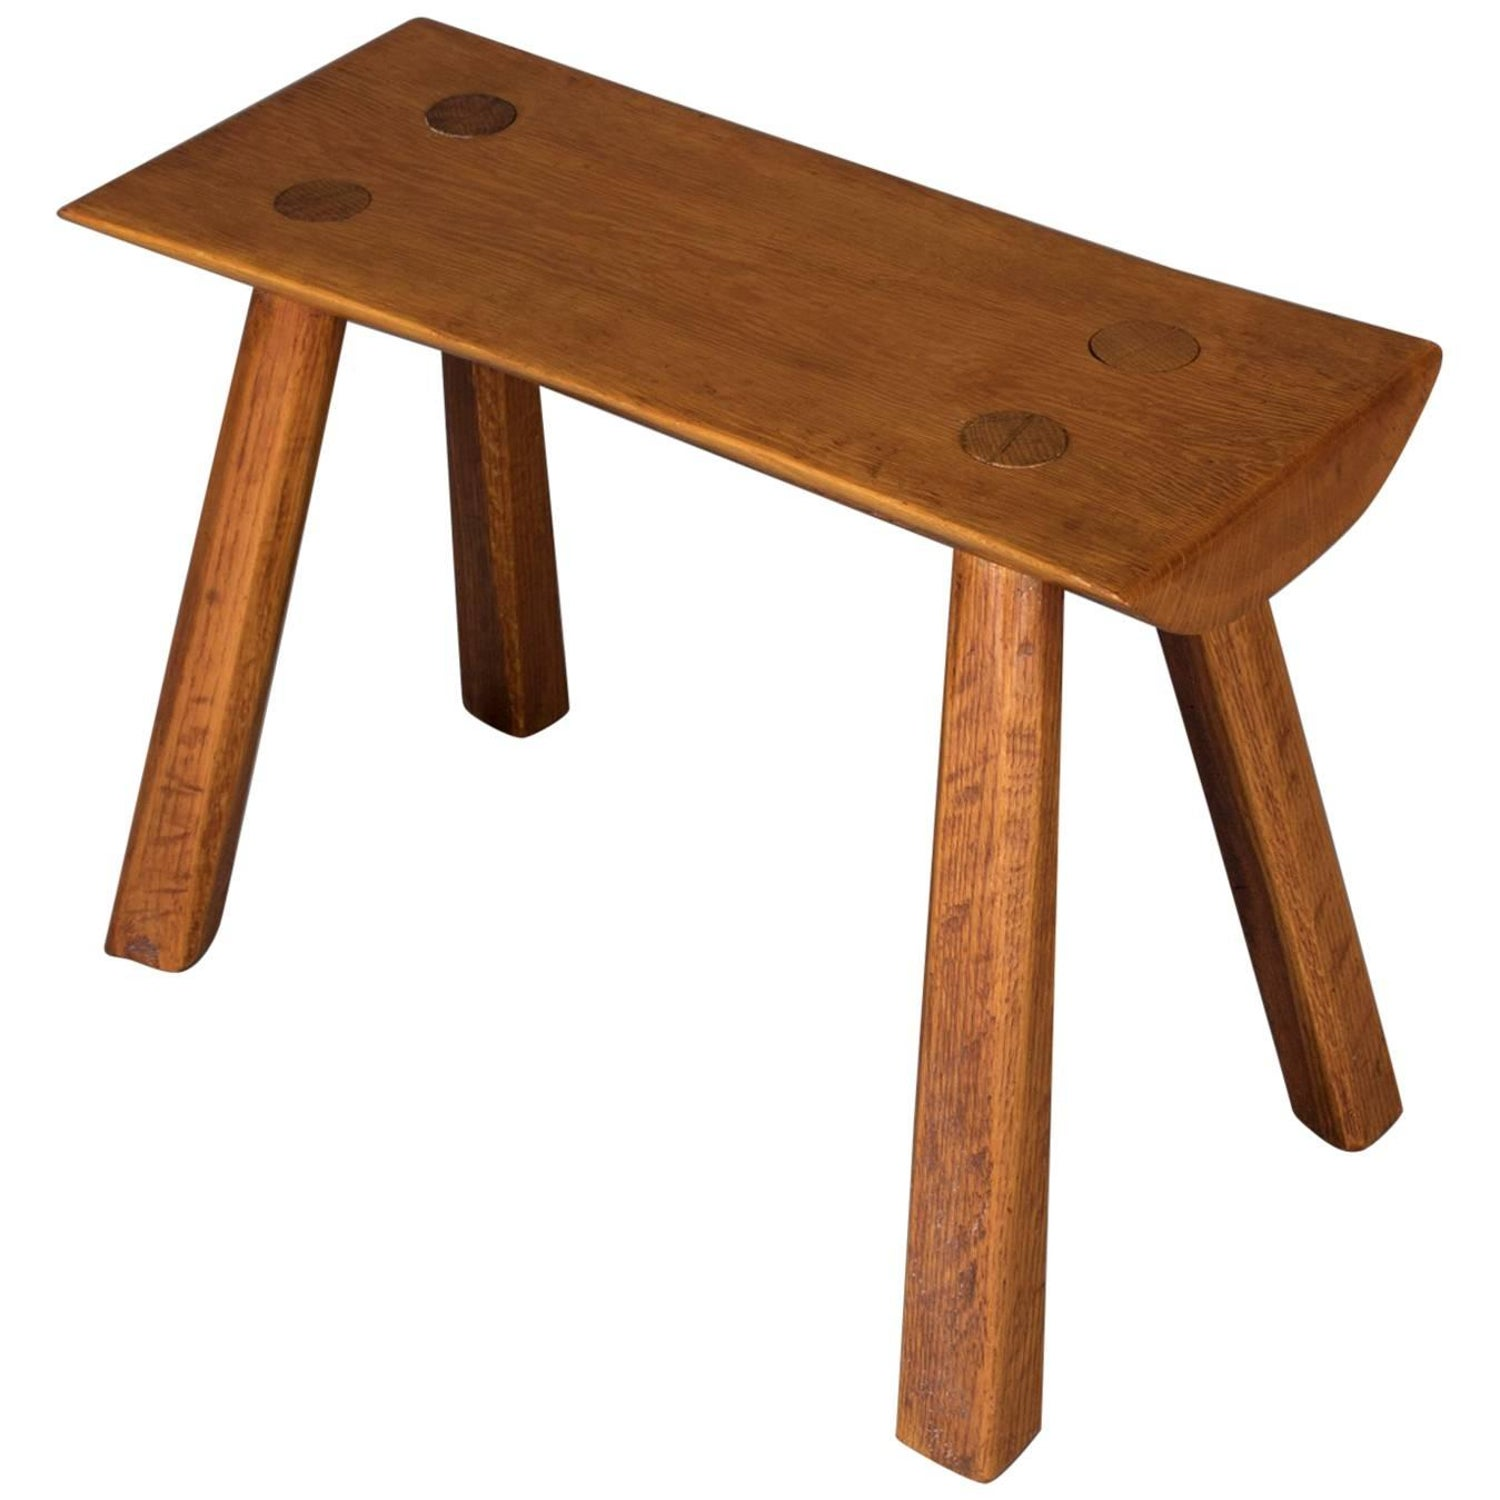 Adirondack old hickory school hand carved mortise and tenon slab wood bench at 1stdibs